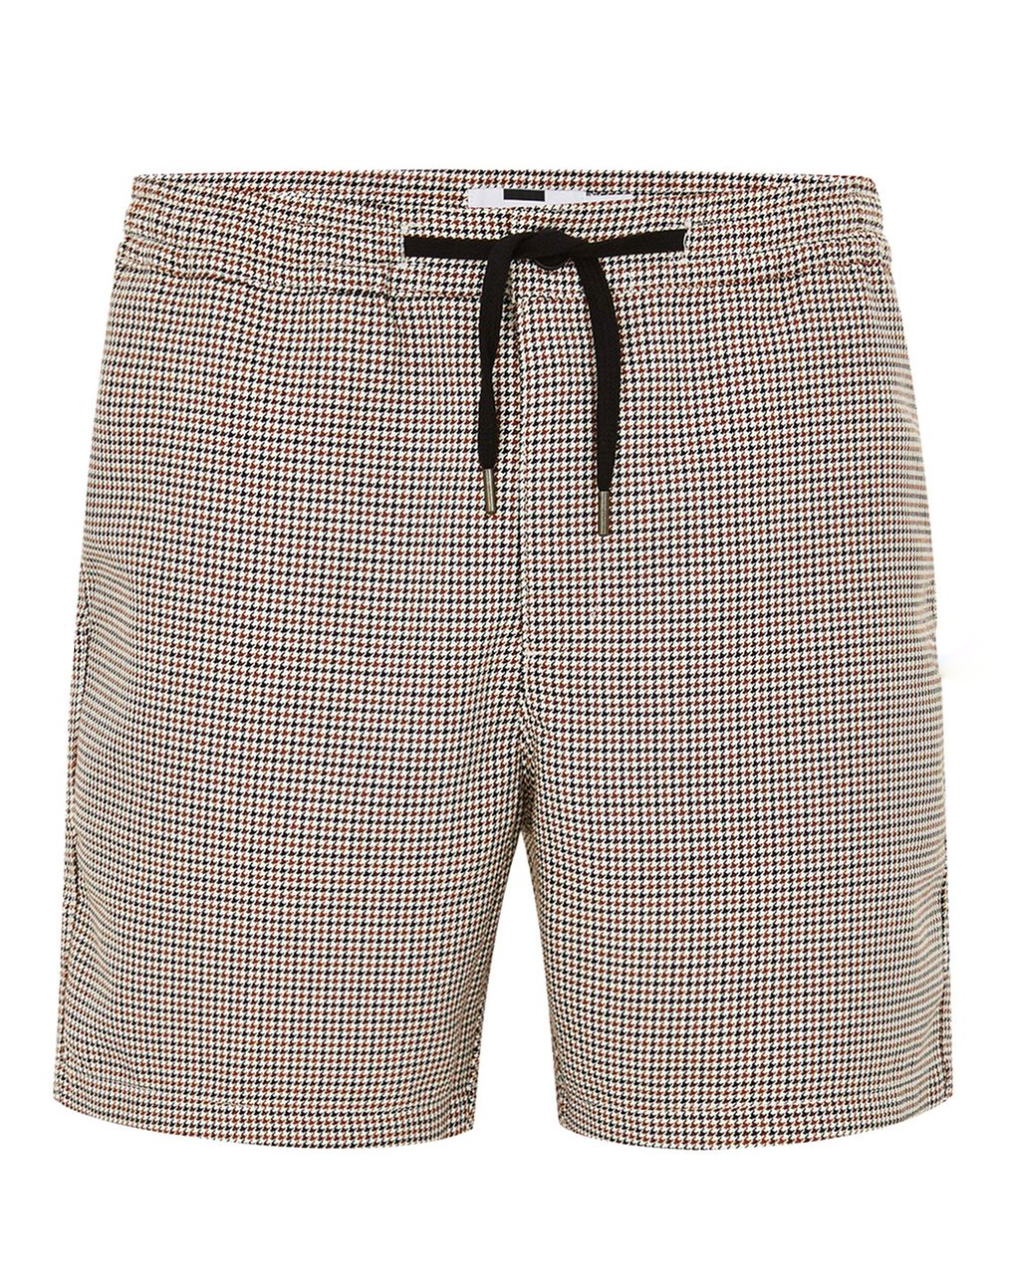 Houndstooth Shorts   - ($55)